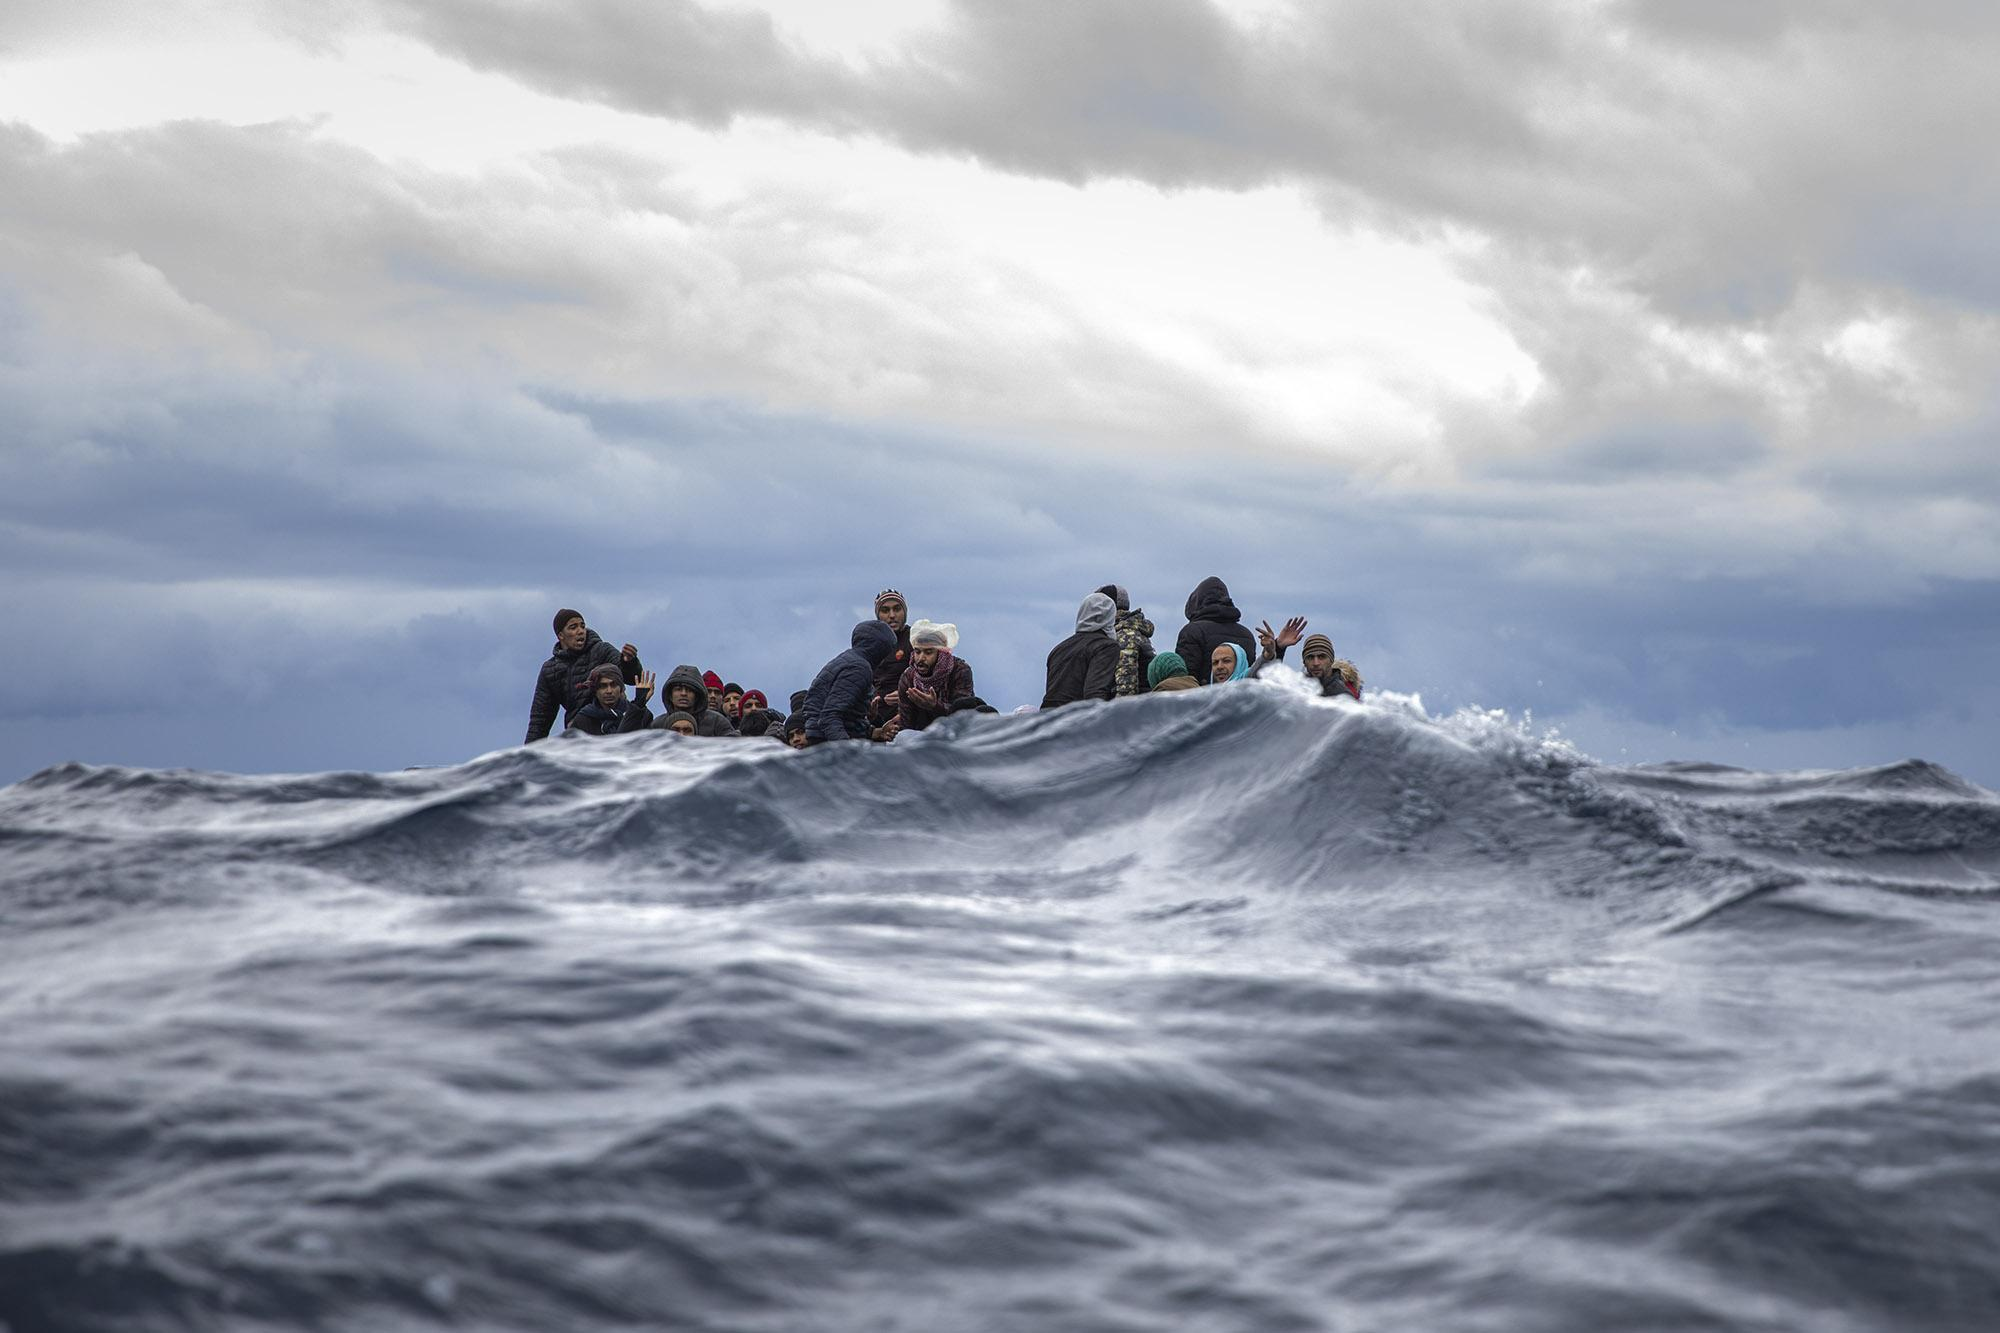 Moroccans and Bangladeshis wait on an overcrowded wooden boat, as aid workers of the Spanish NGO Open Arms approached them off the Libyan coast, Friday, Jan. 10, 2020. (© Santi Palacios)